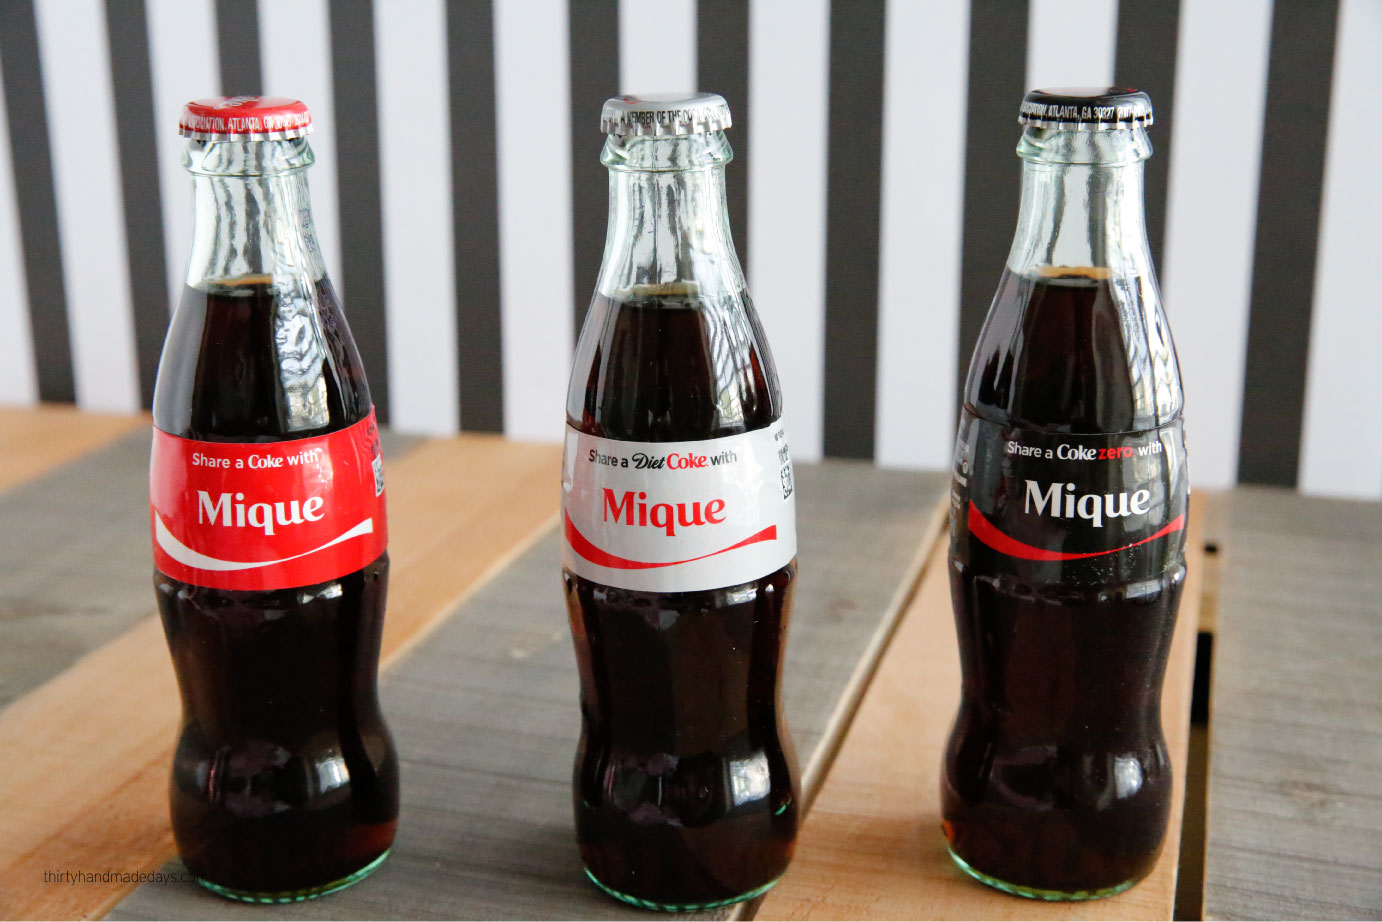 Share a Coke giveaway - enter to win this giveaway and get personalized bottles of Coke